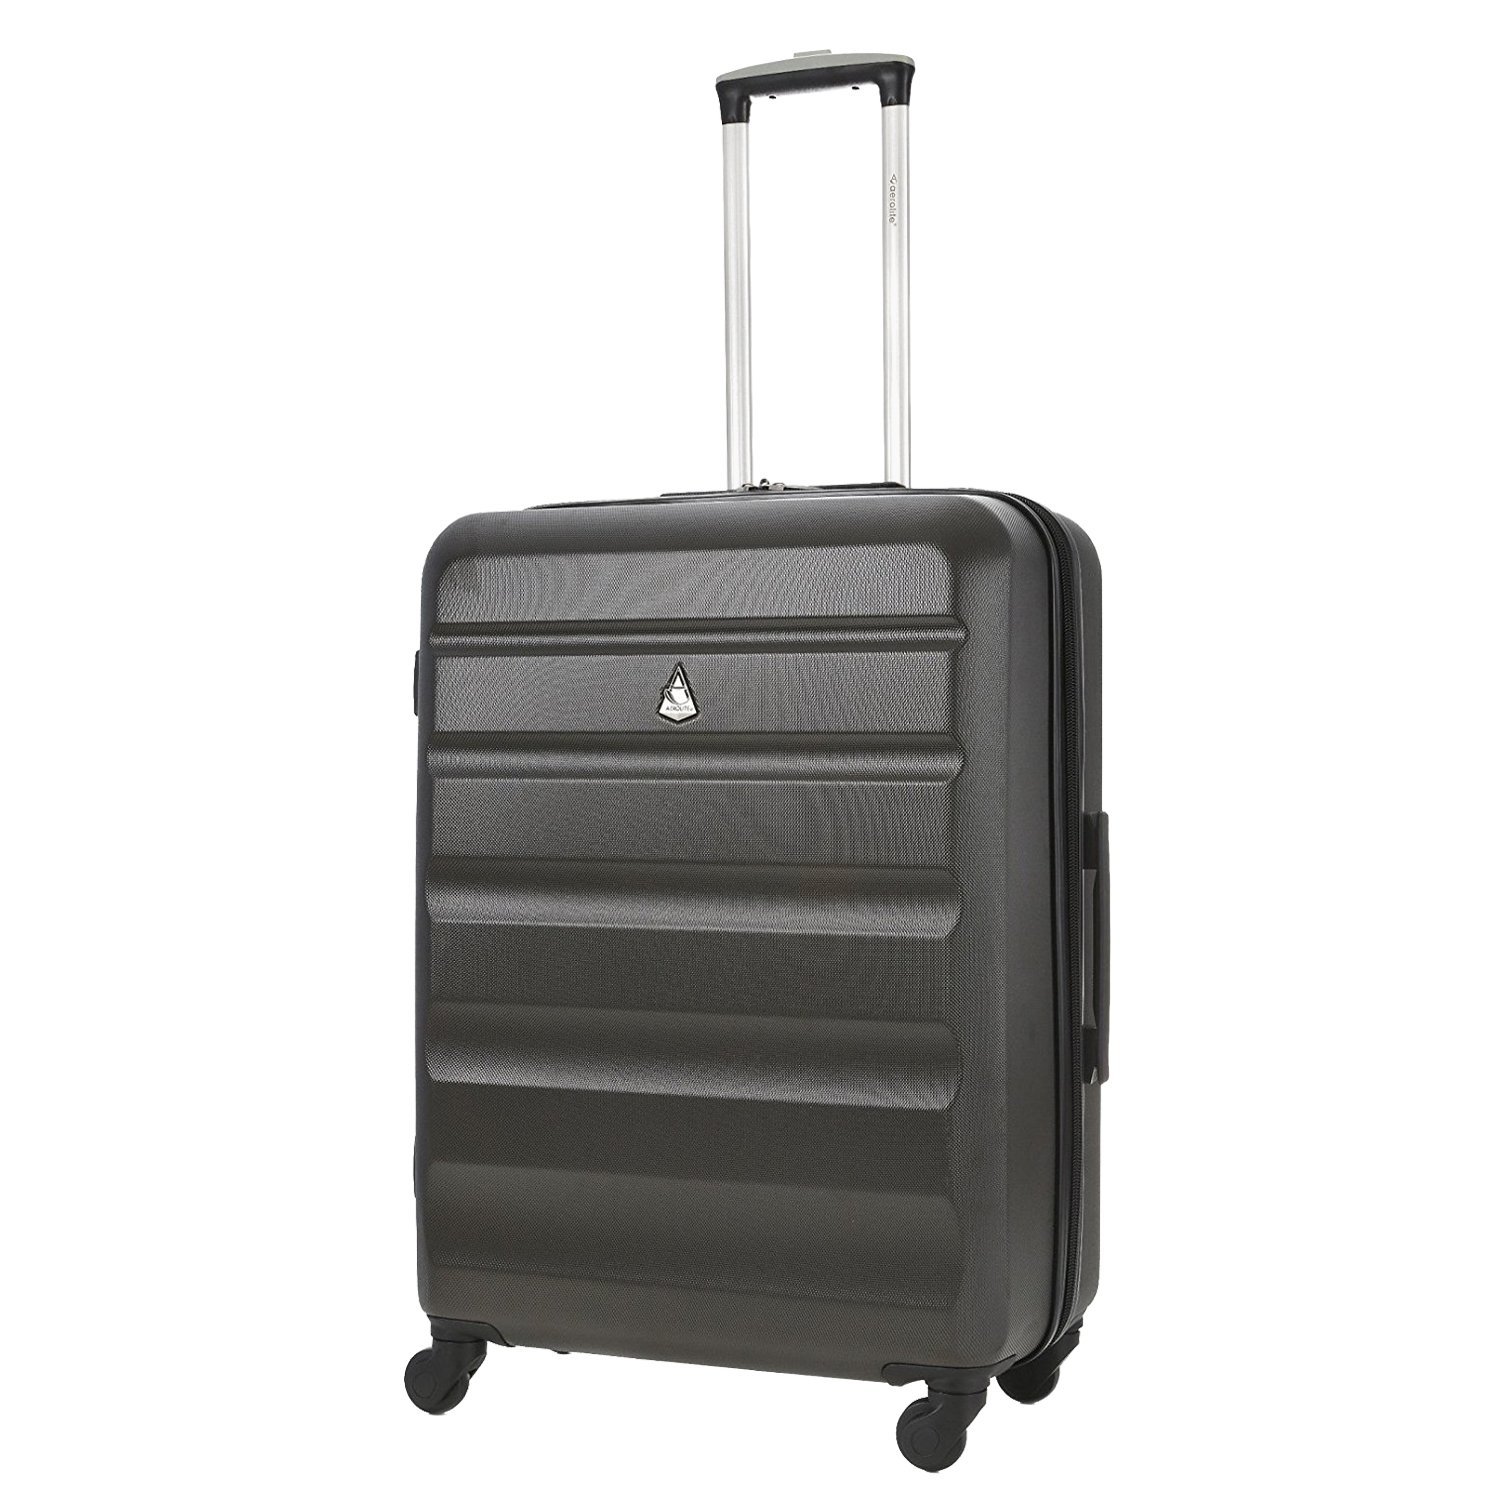 c5a26cc45f19 Aerolite Medium 25in Lightweight Hard Shell 4 Wheel Travel Hold Checked  Check in Luggage Suitcase Charcoal